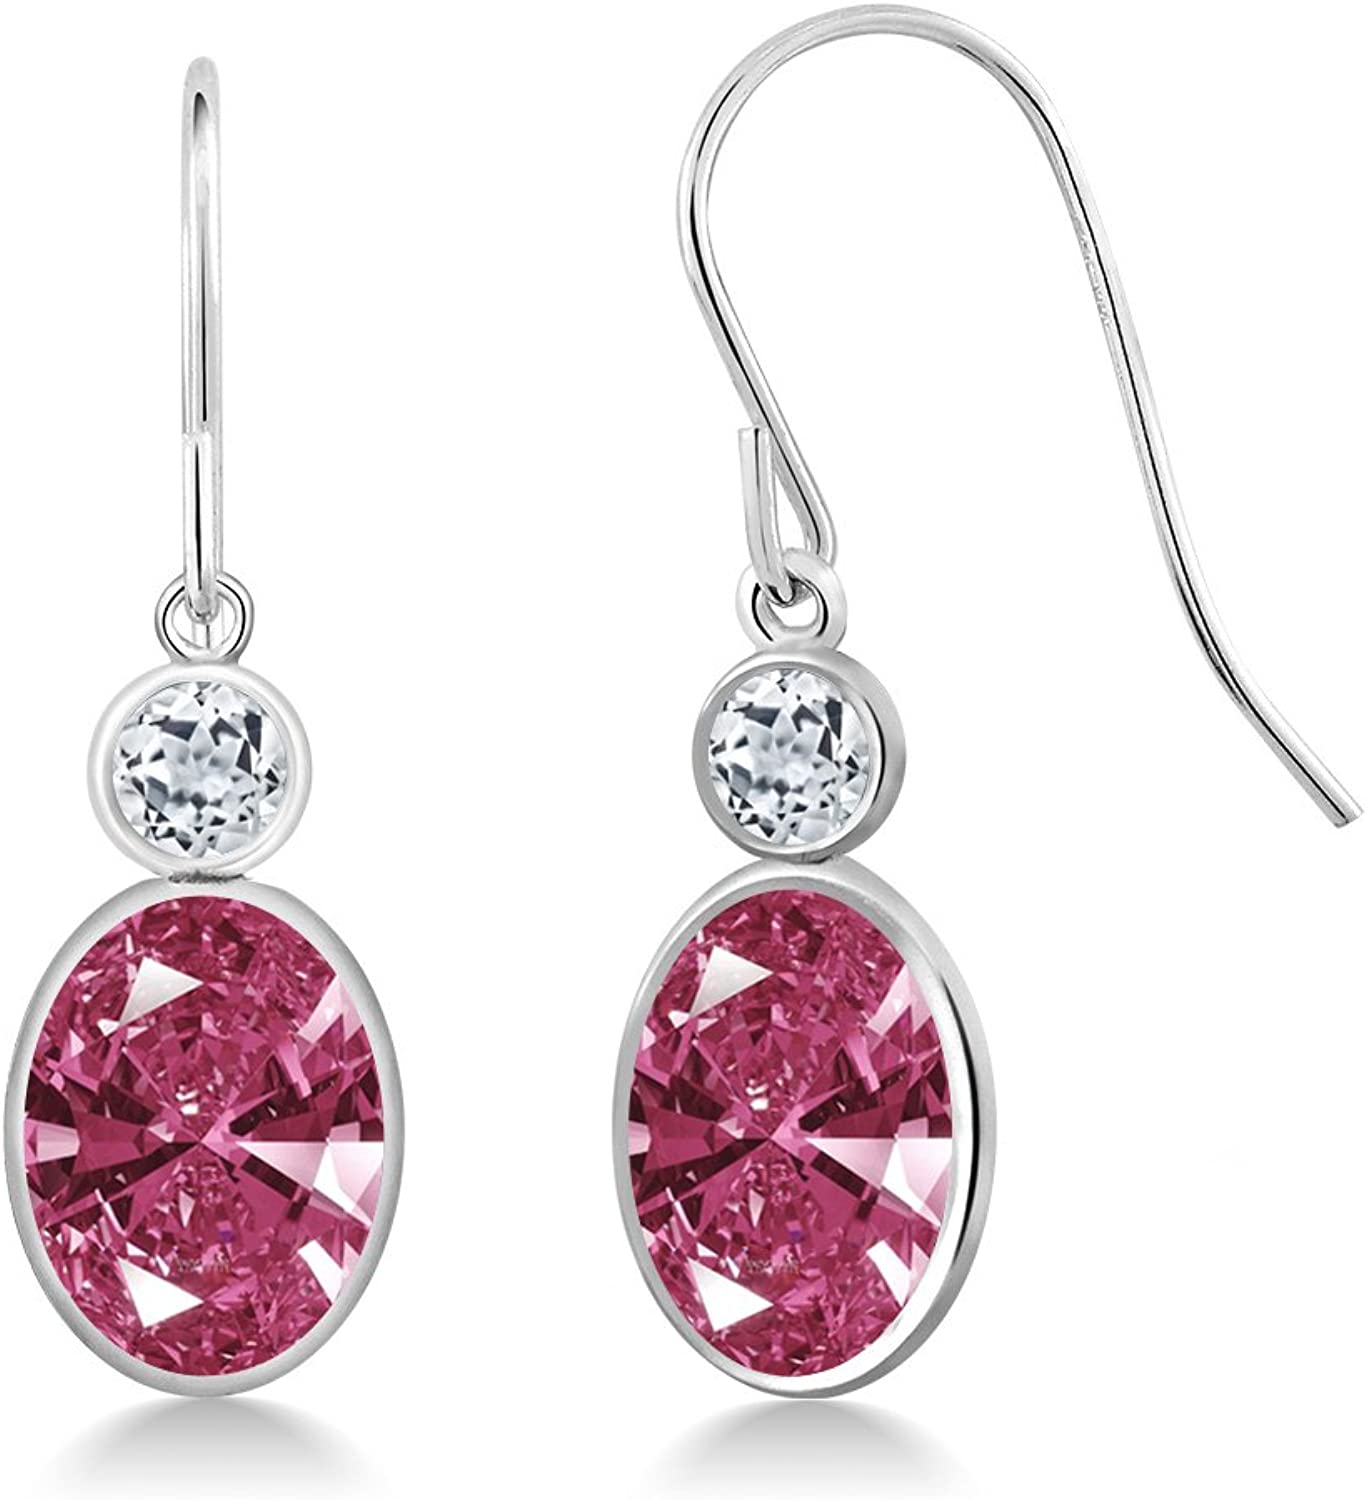 2.70 Ct Red 14K White gold Earrings Made With Swarovski Zirconia